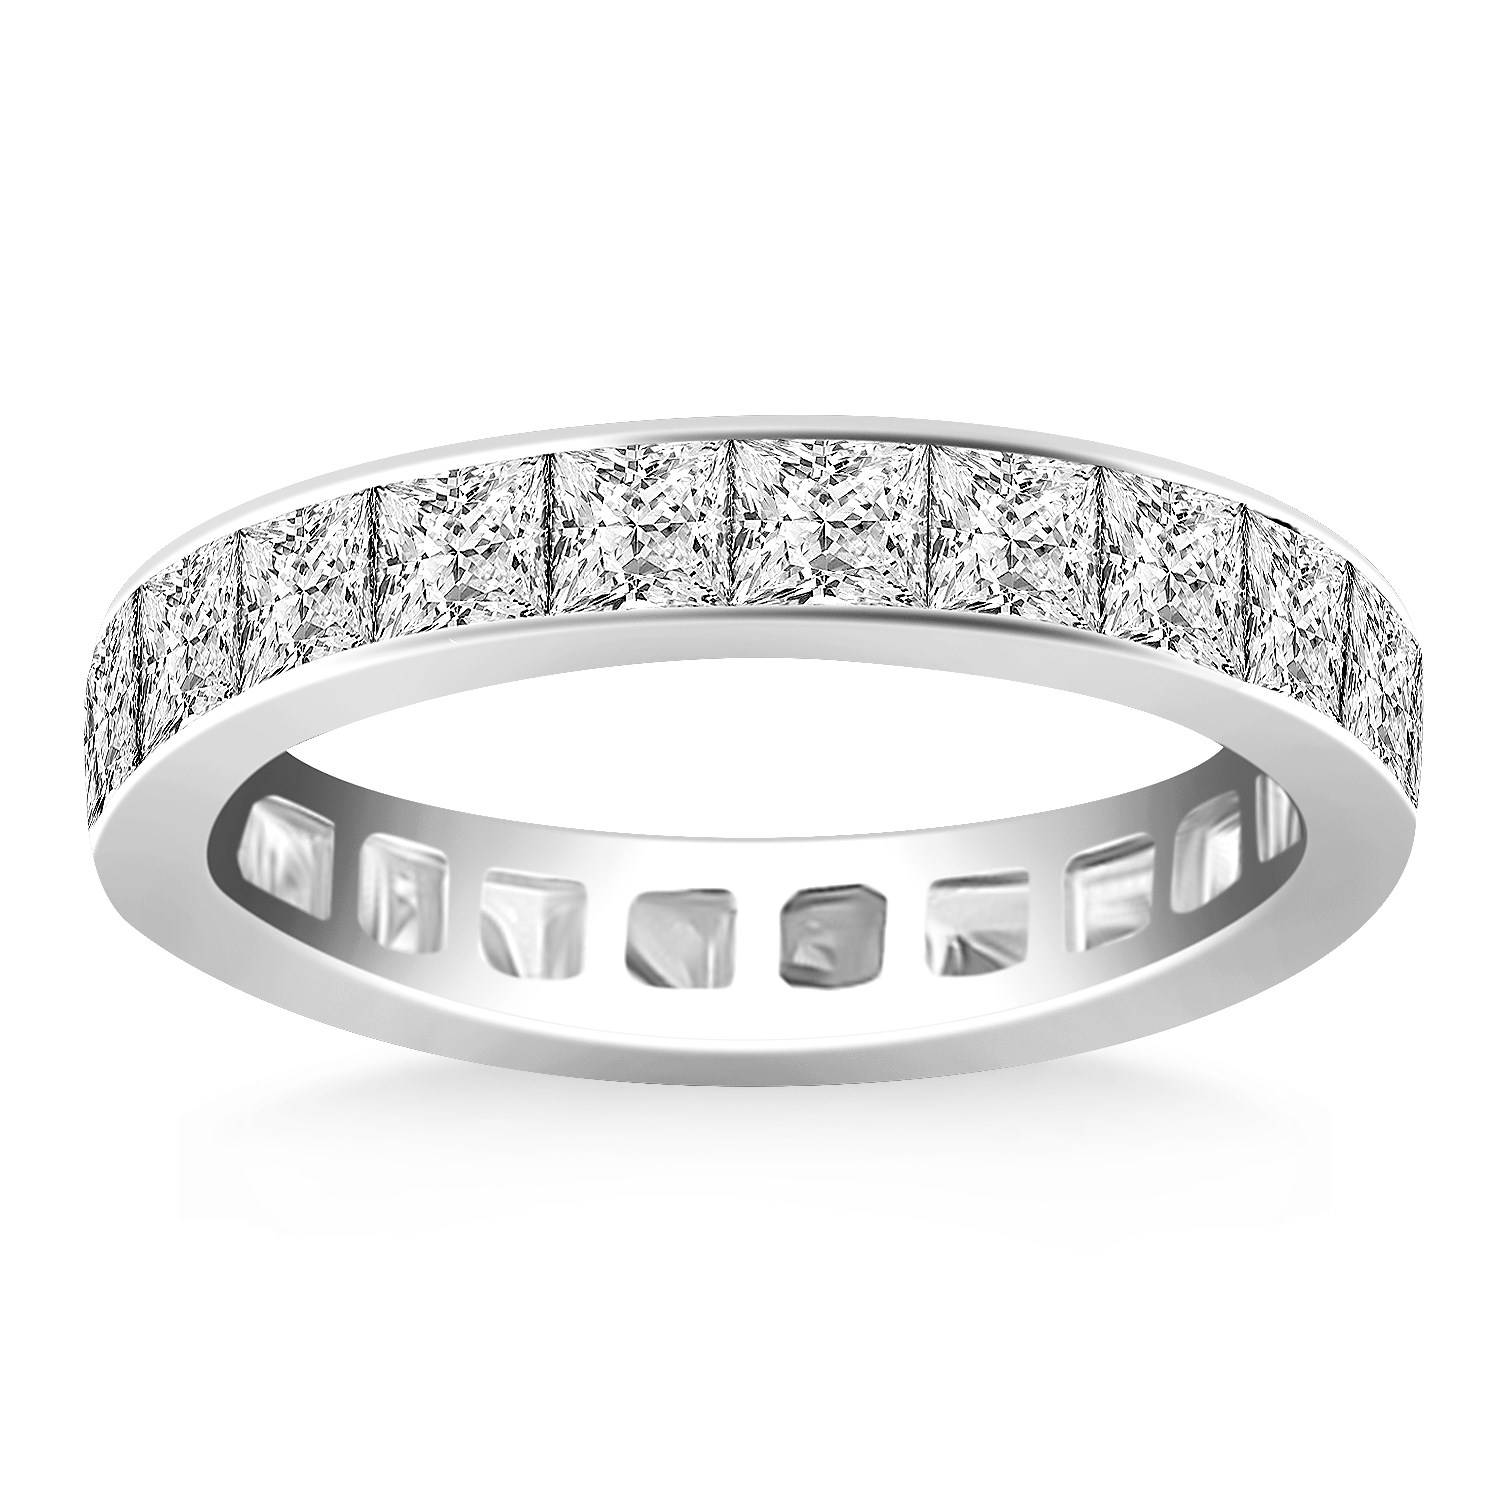 round band alexis ring and metropolitan bands anniversary jaffe a product princess diamond eternity house